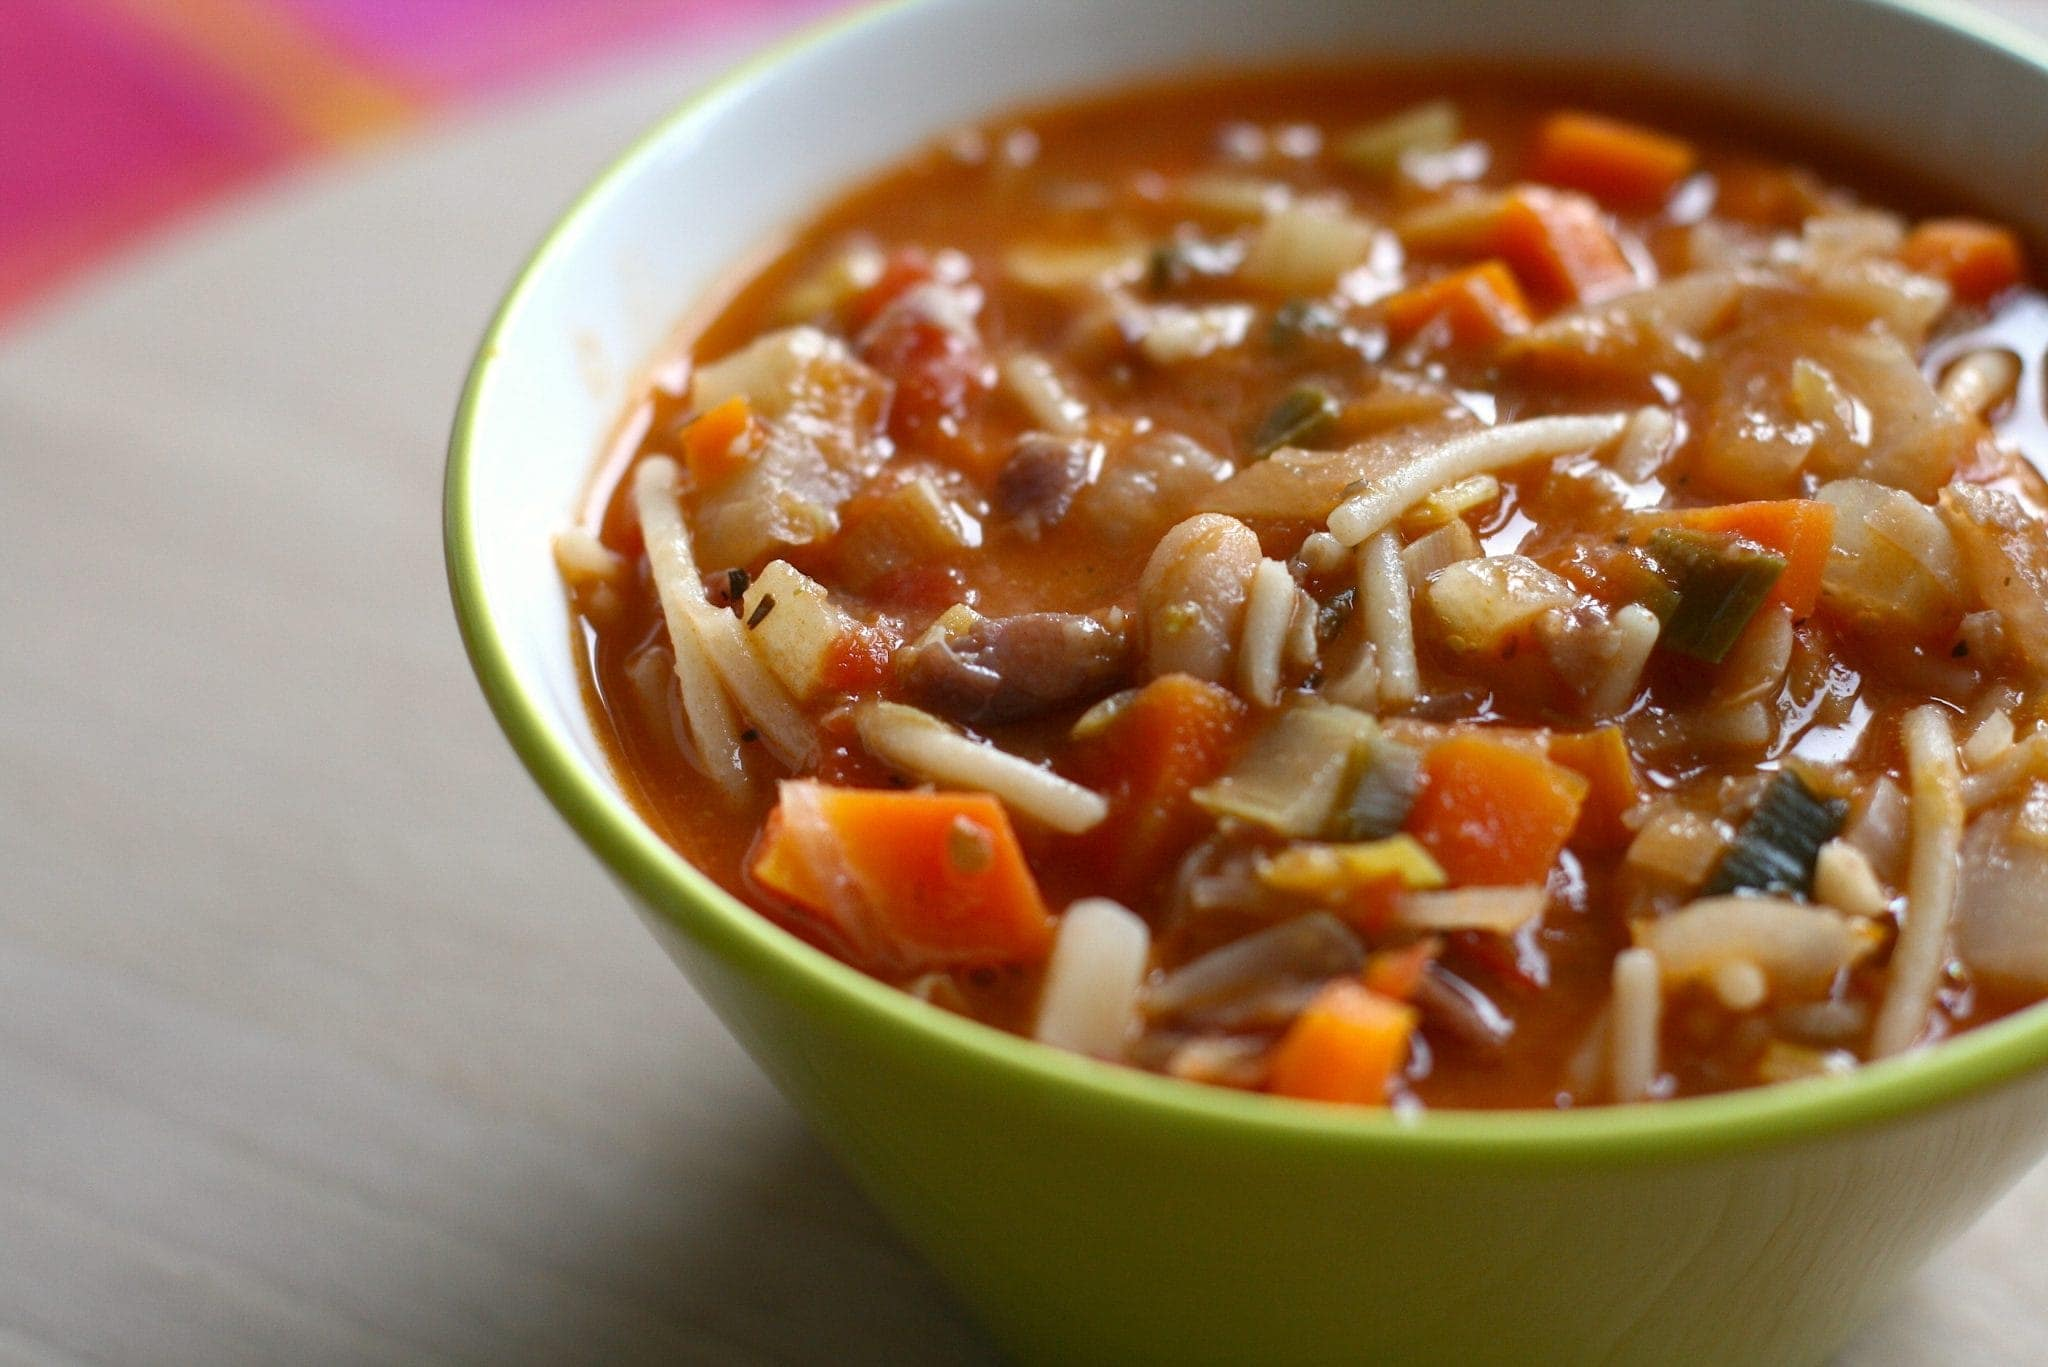 The authentic Italian Minestrone soup recipe is a delight.